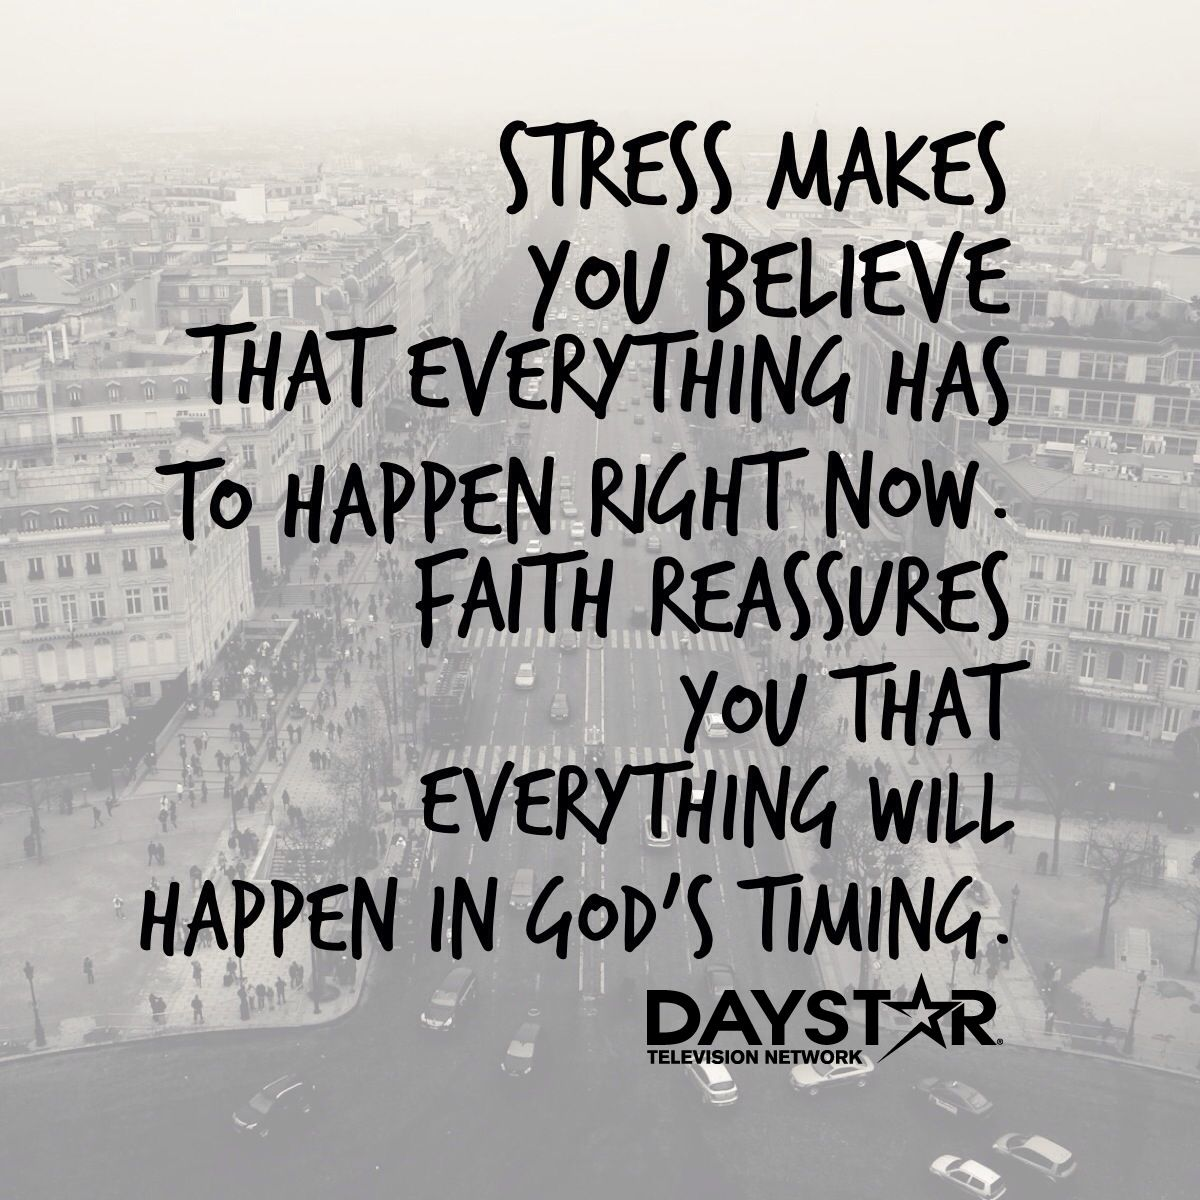 Stress makes you believe that everything has to happen now. Faith reassures you that everything will happen in God's timing. [Daystar.com]